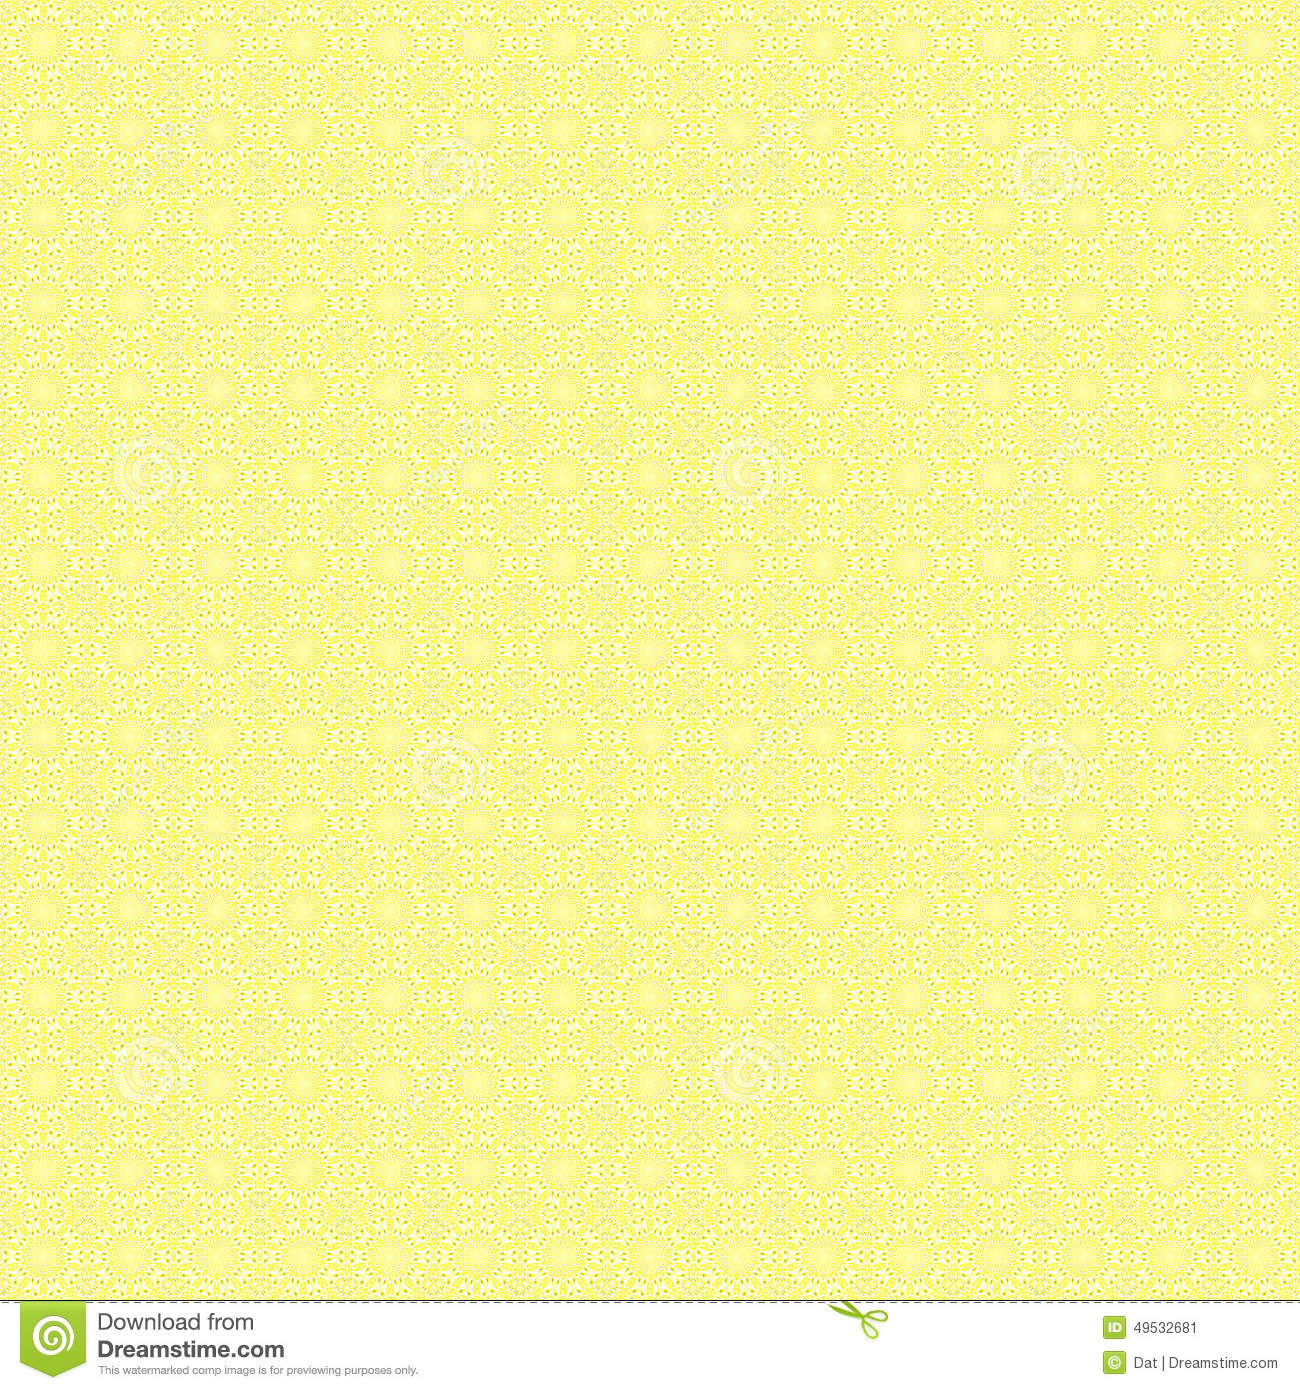 Light Yellow Simple Seamless Pattern Stock Illustration ...